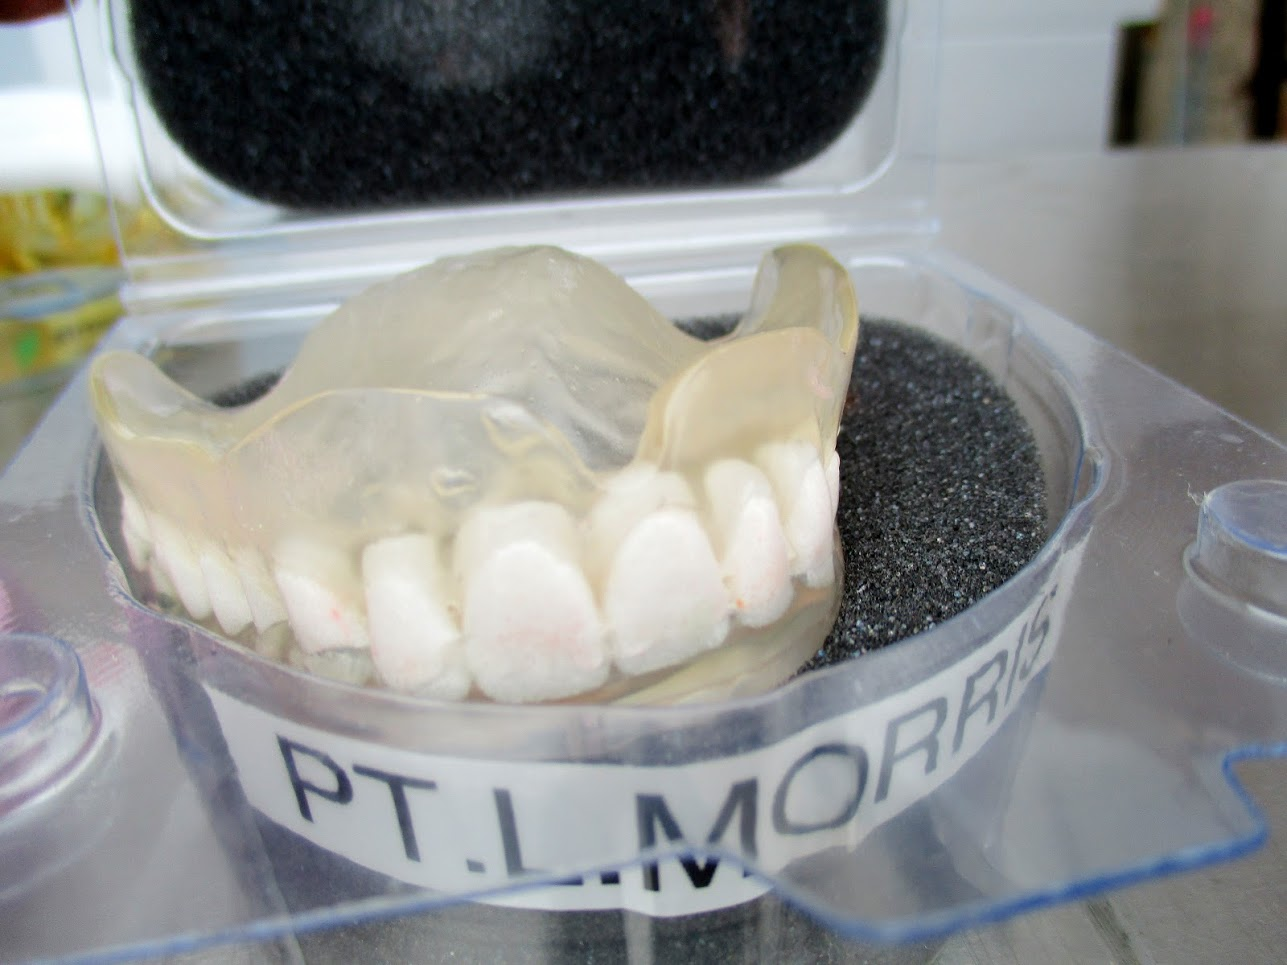 Lot 1 - Dental Models/Molds